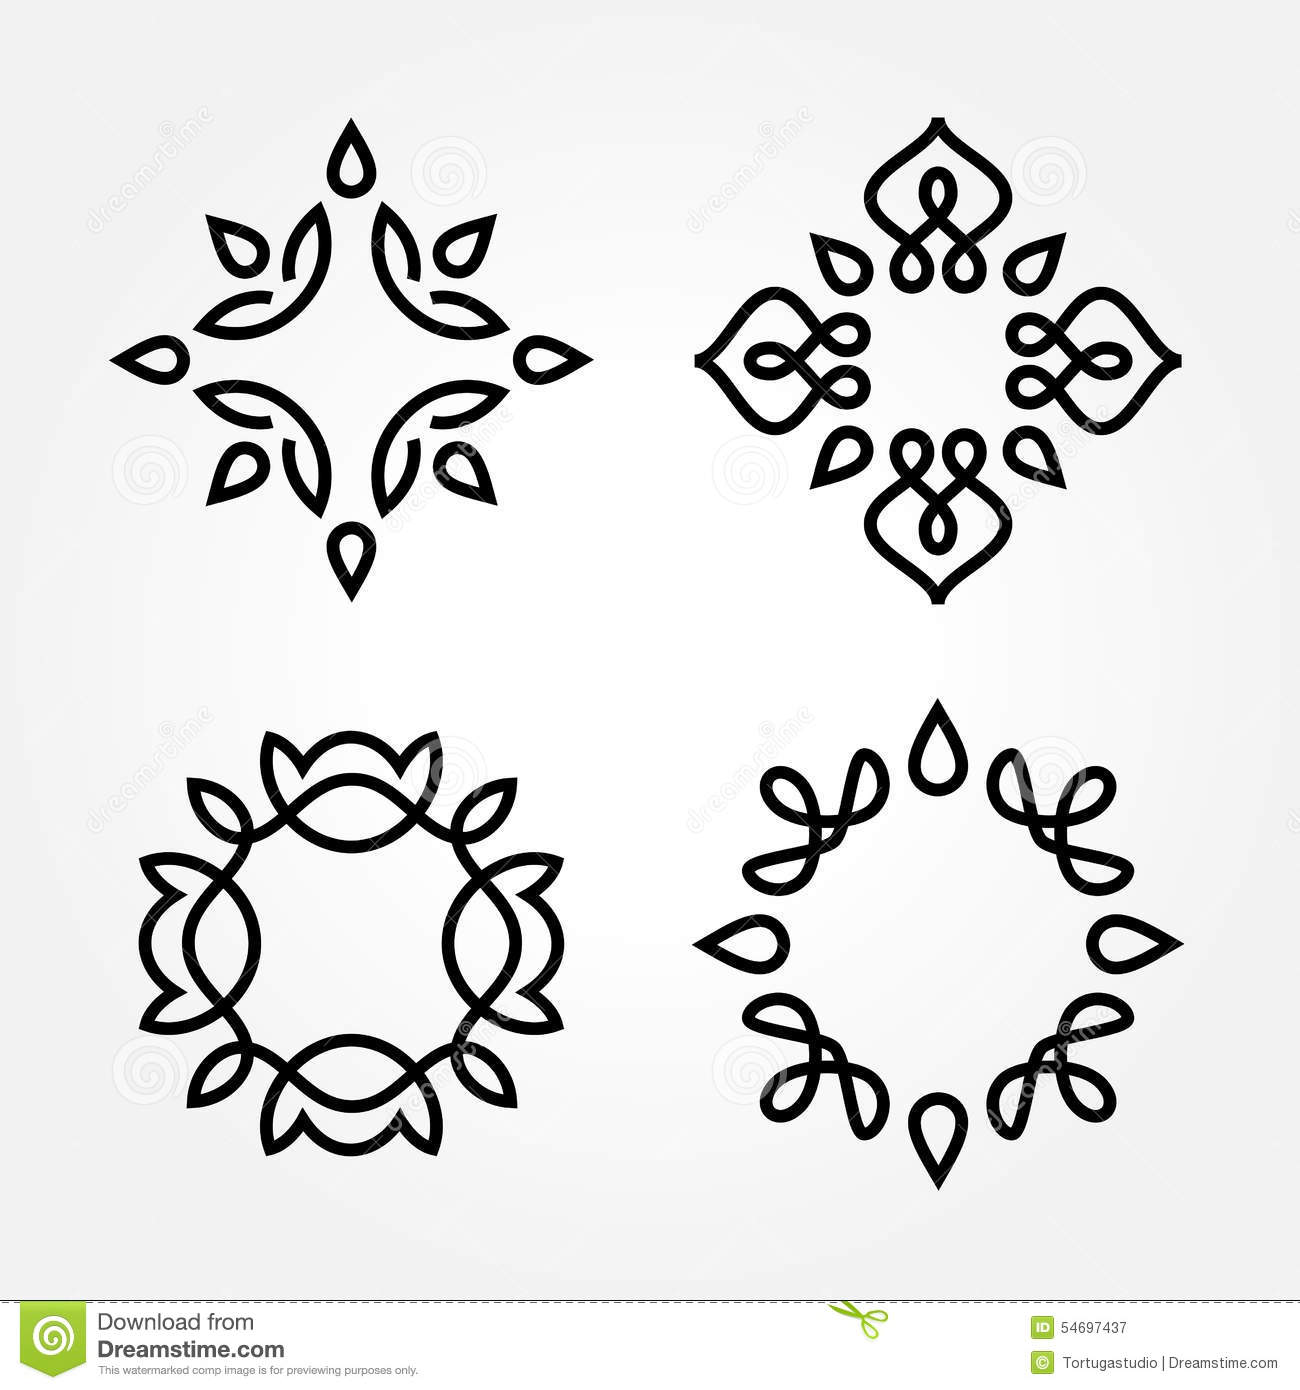 Simple Line Art Designs : Simple line designs art pixshark images